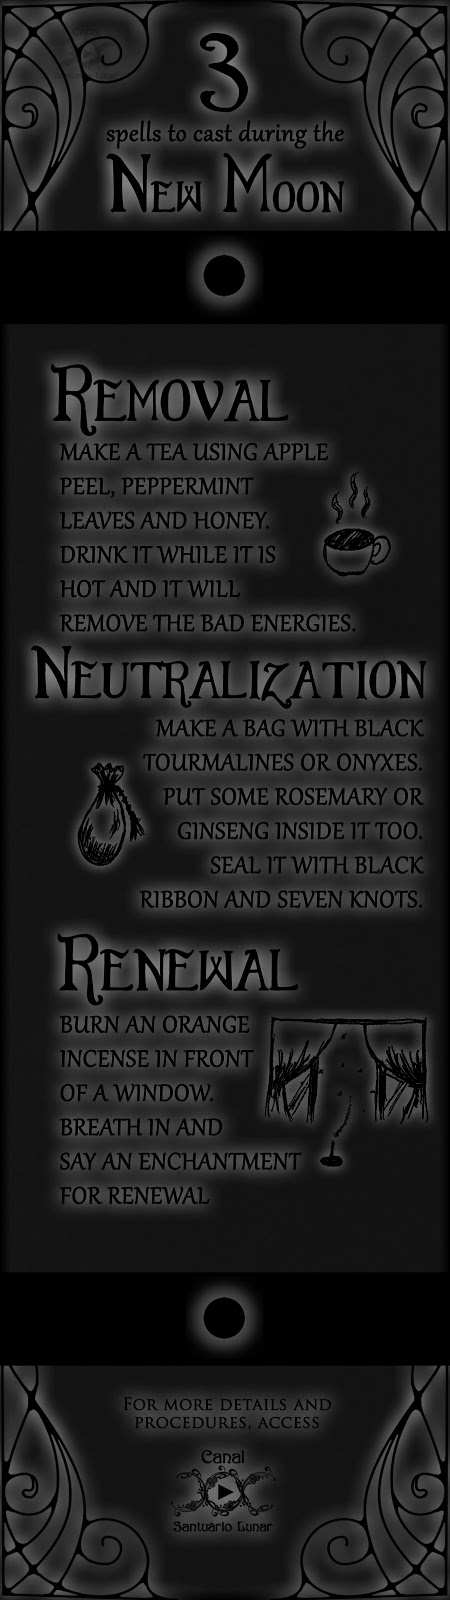 3 spells to cast during the New Moon   Wicca, Witchcraft, Magic, Witch, Pagan